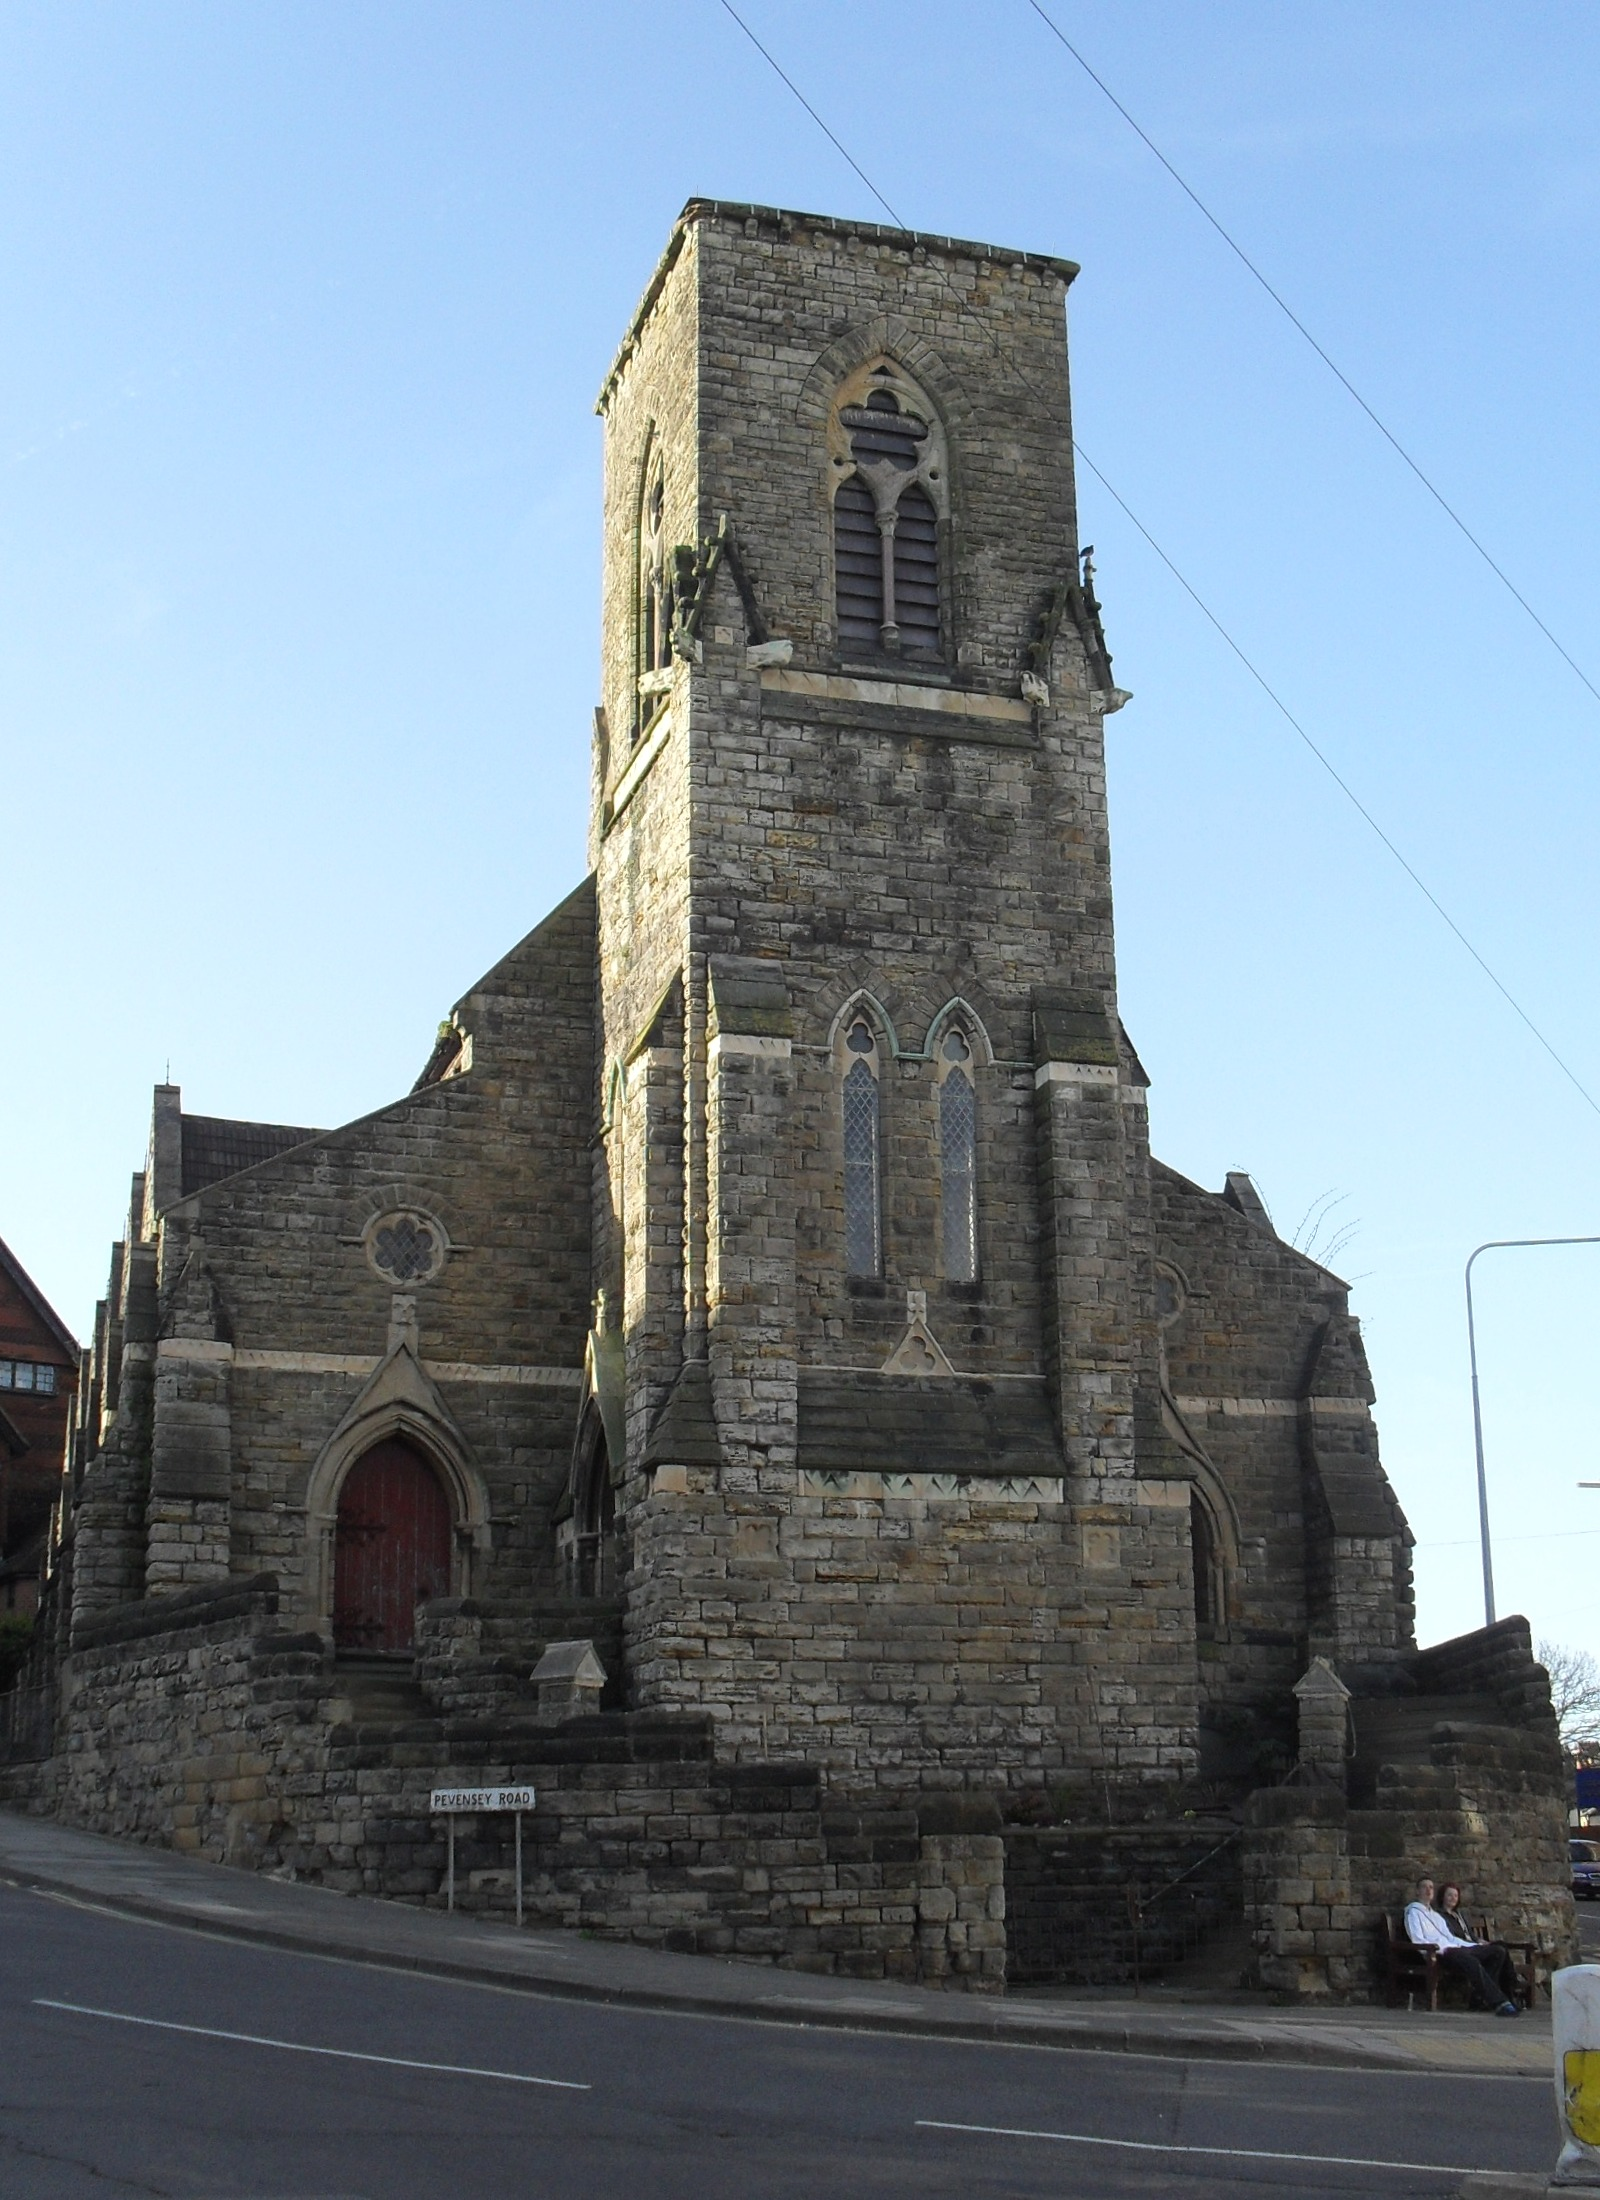 Sedlescombe United Kingdom  City new picture : The church faces the junction Sedlescombe, United Kingdom